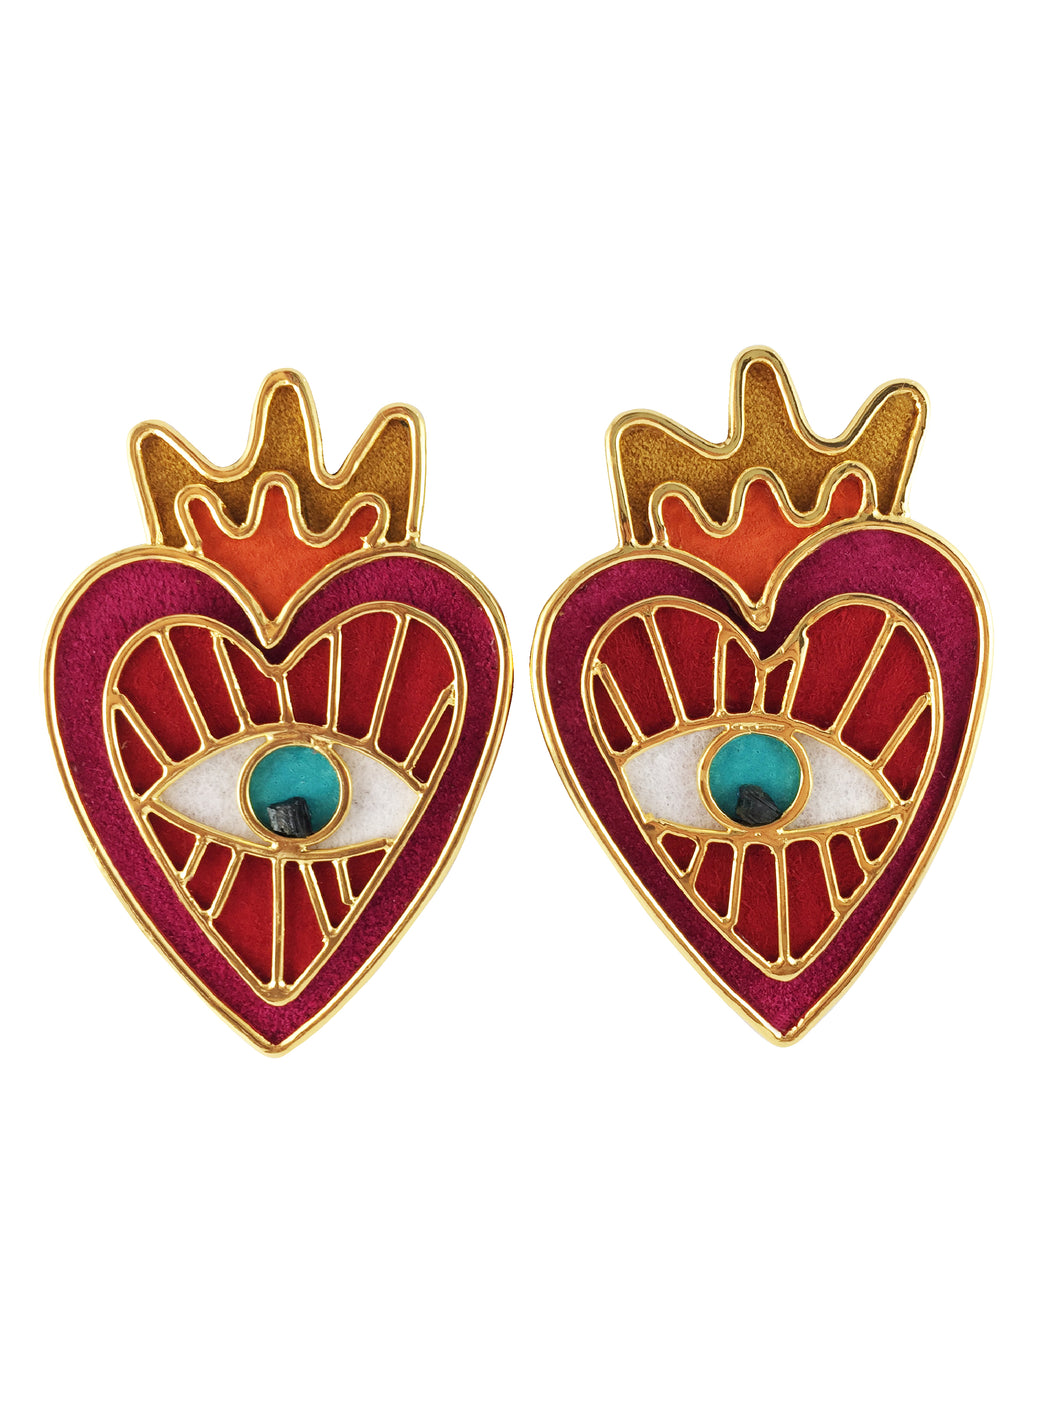 Milagritos del Corazon earrings